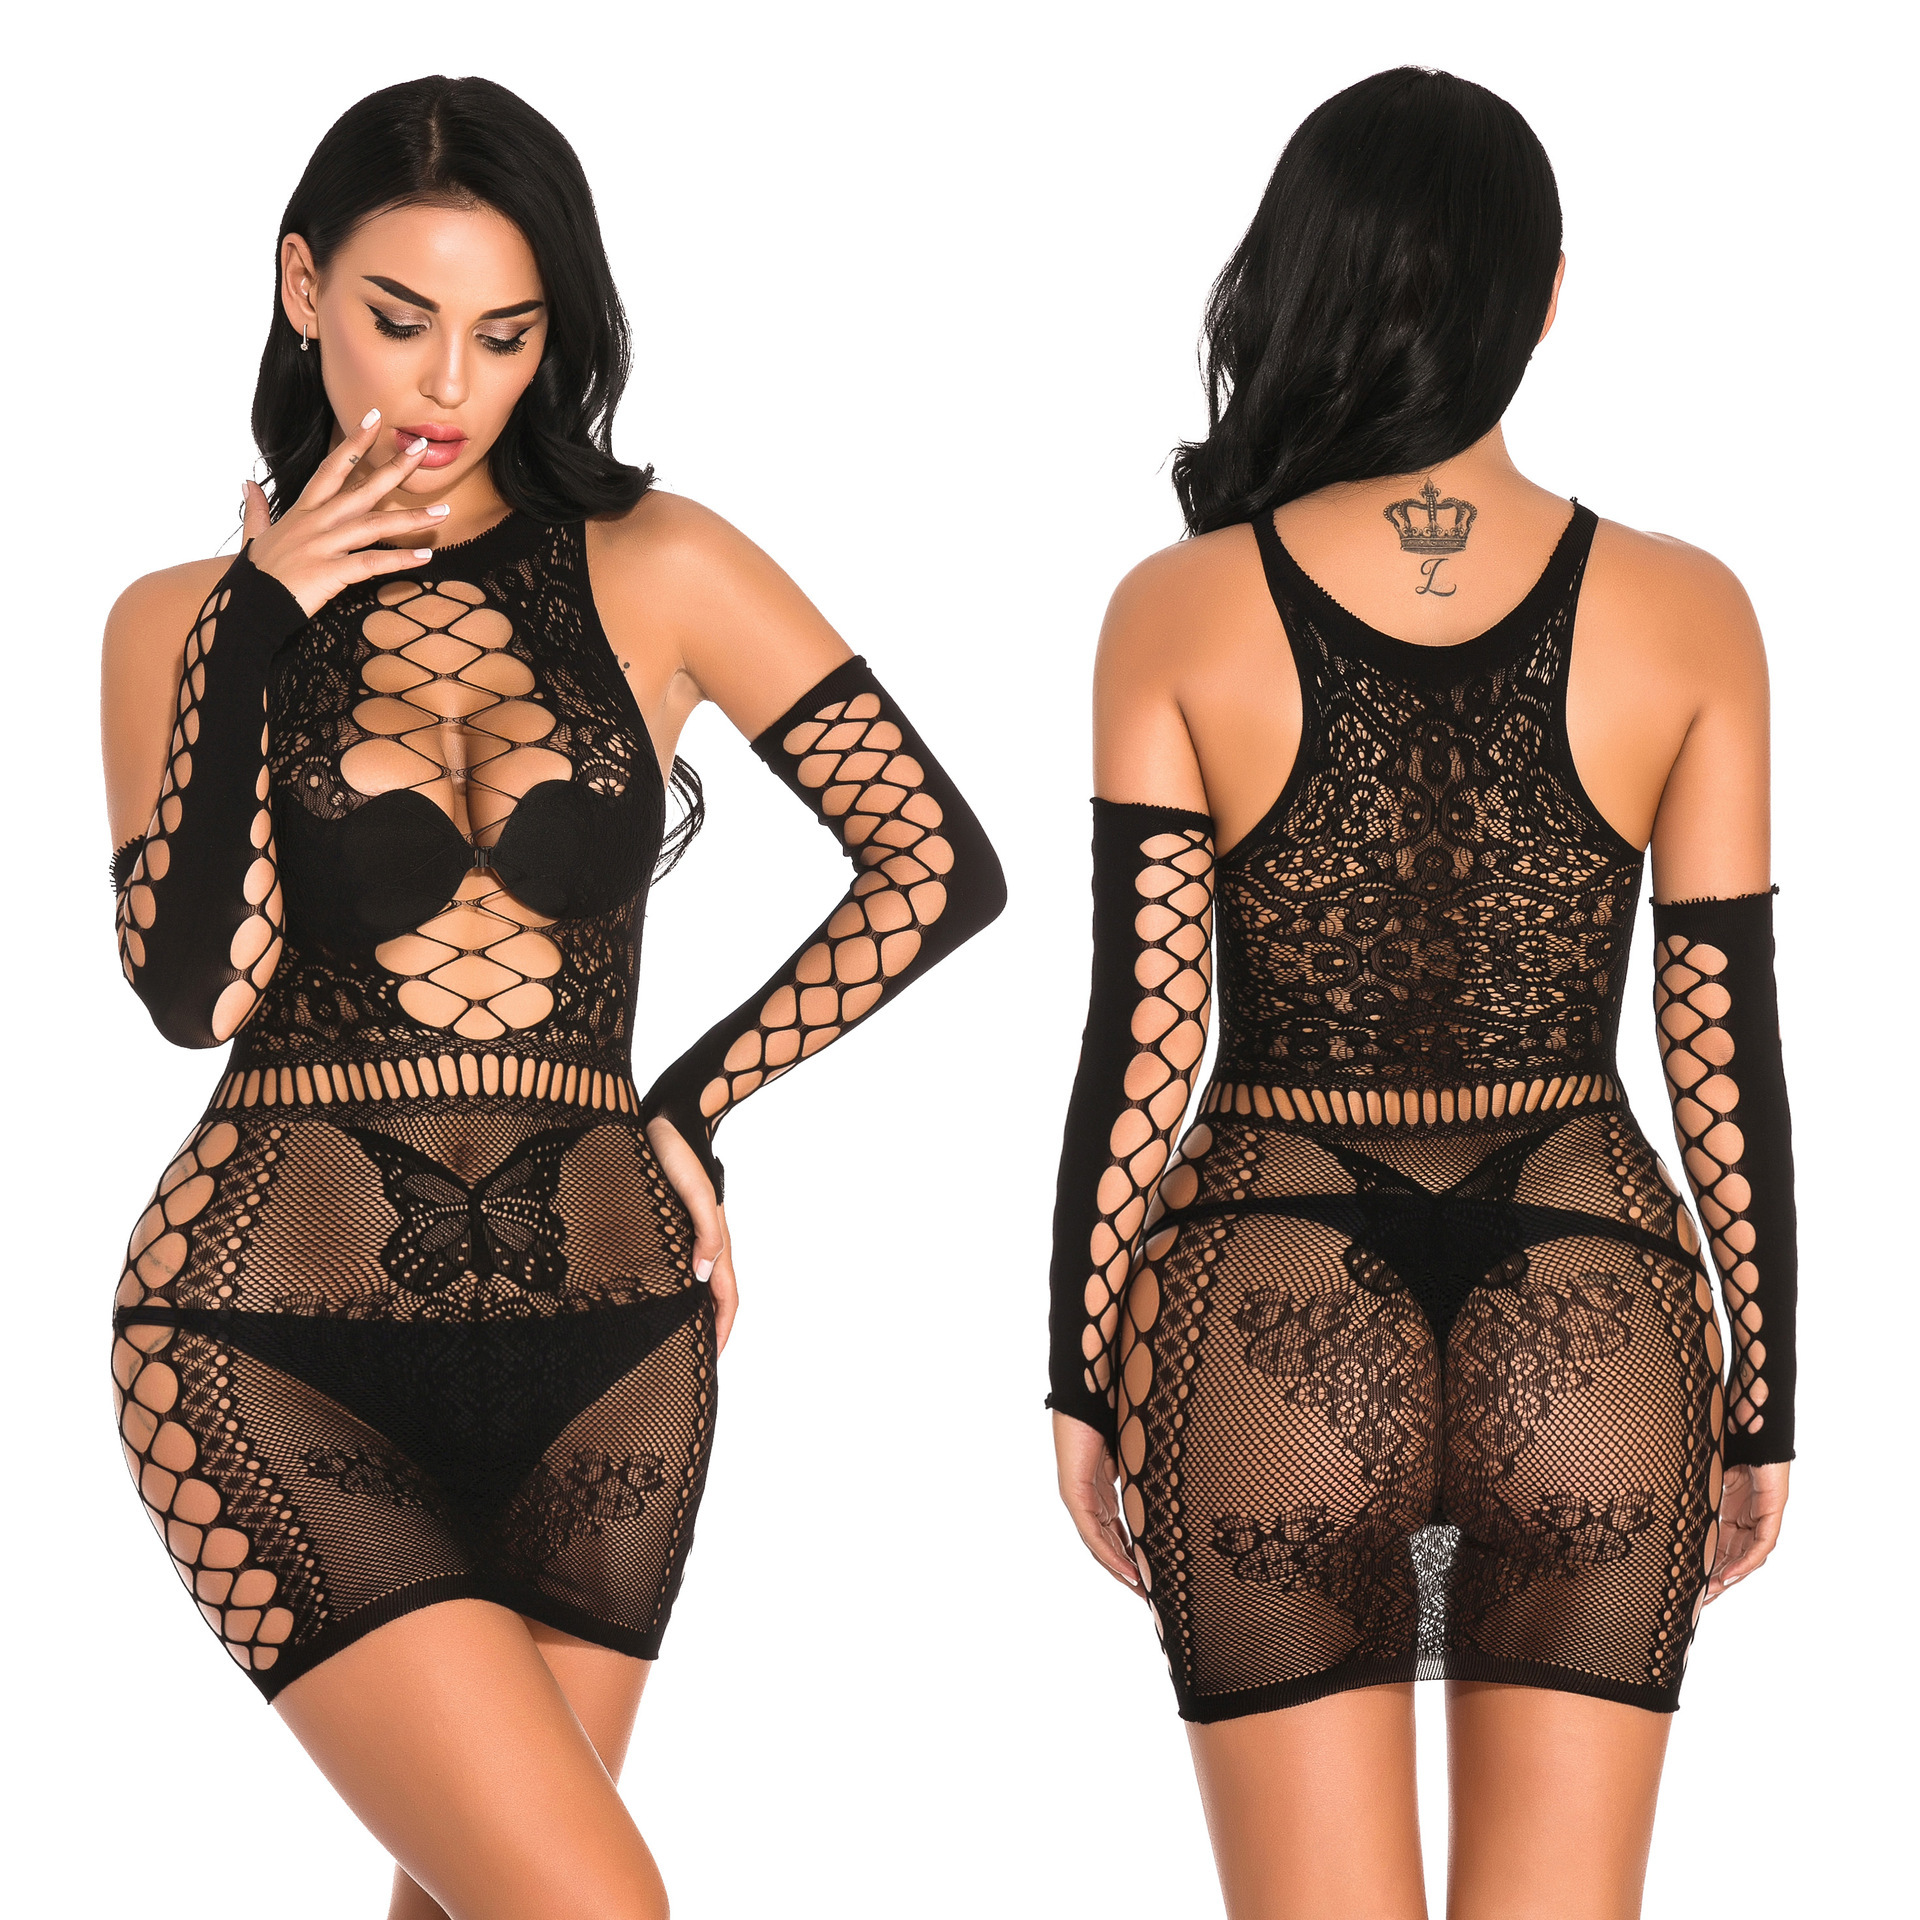 New <font><b>Sexy</b></font> Women Bodysuit <font><b>Lingerie</b></font> Underwear Fishnet <font><b>Bodystocking</b></font> For Sex Erotic Costumes Pantyhose Mesh <font><b>Tights</b></font> image